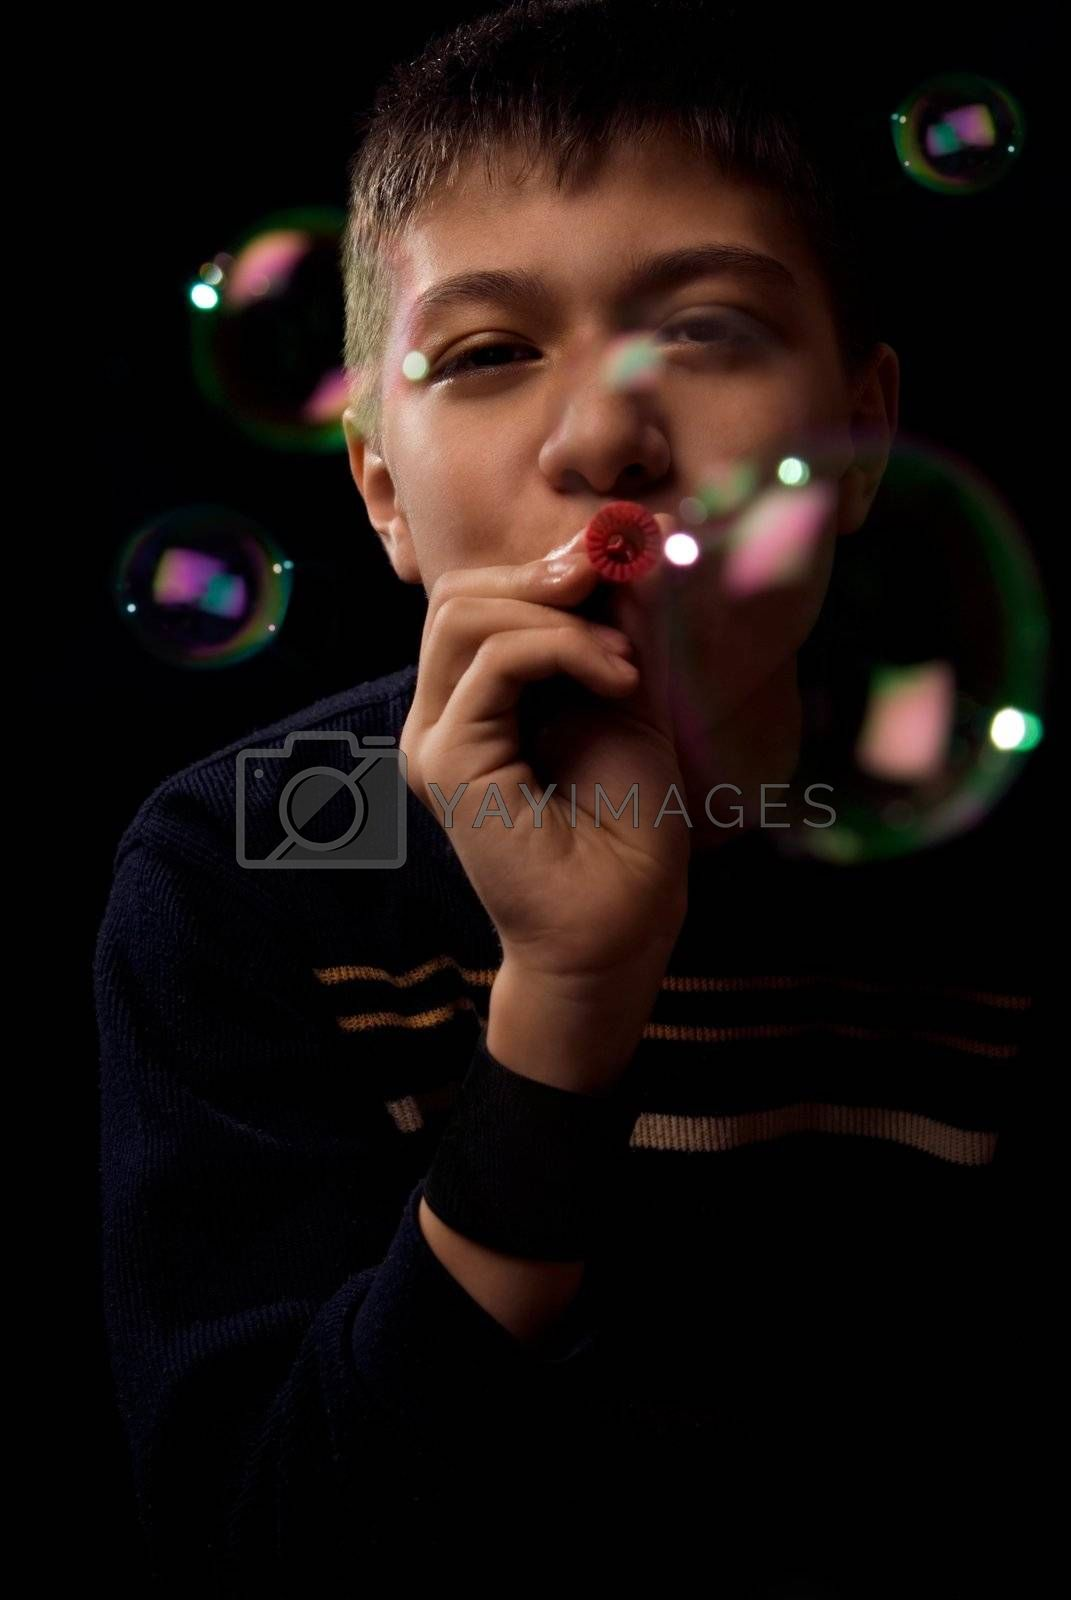 Photo of the young boy blowing soap bubbles